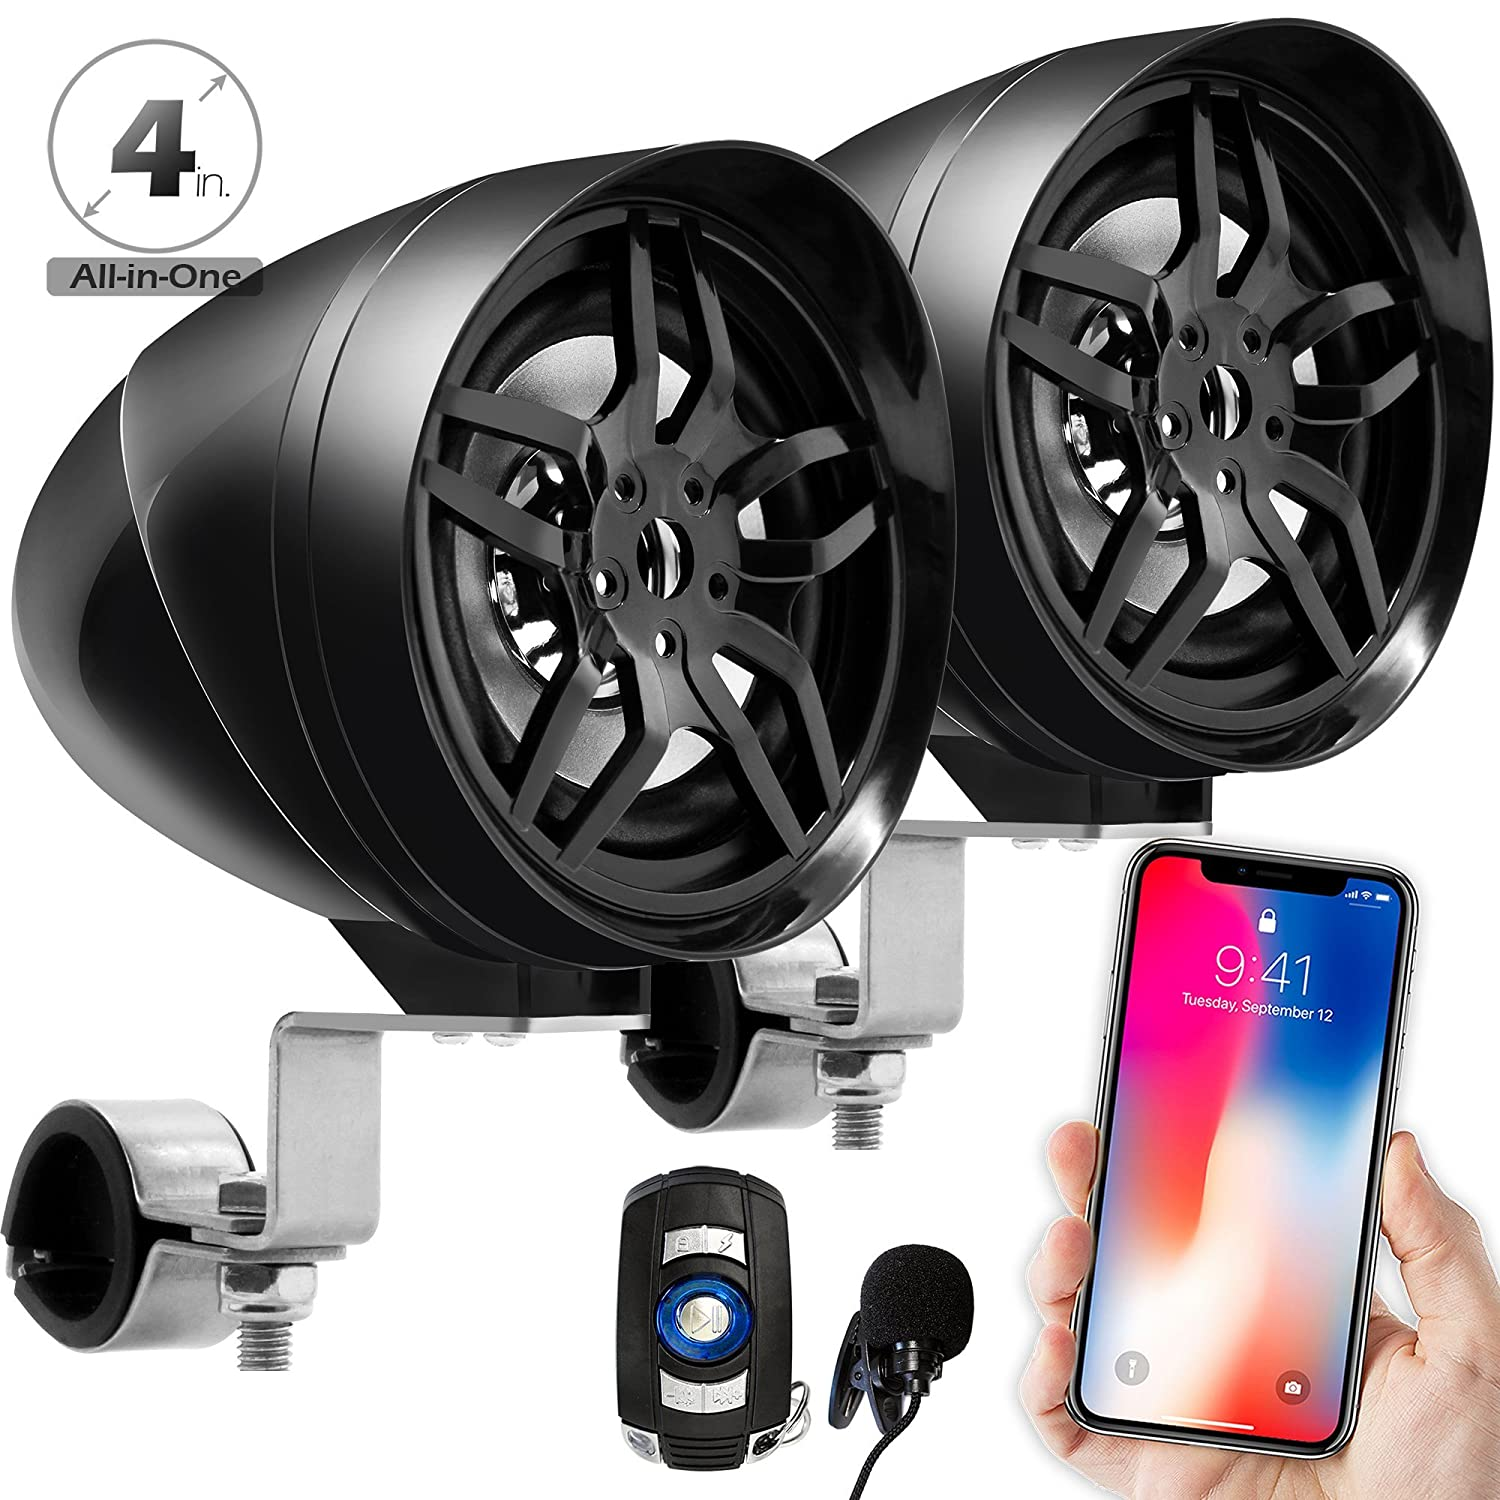 GoldenHawk 4' Waterproof Bluetooth Wireless Motorcycle Stereo Speakers 7/8 - 1.25 in. Handlebar Mount MP3 Music Player Sound Audio System Scooter ATV UTV w/ USB, Remote, Radio, Amplifier (Chrome) Golden Hawk USA GH028